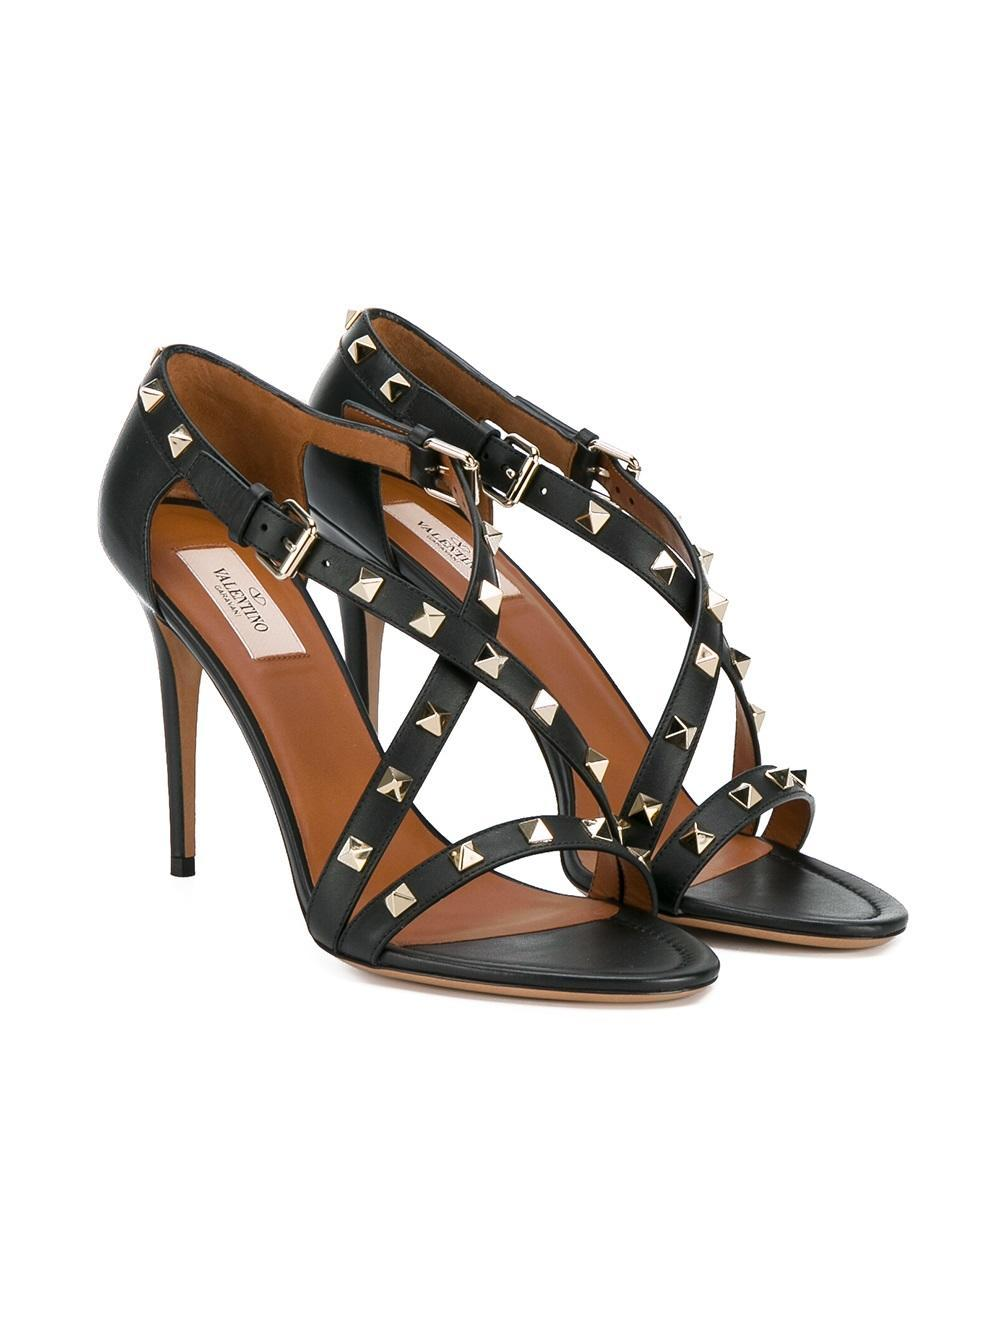 Valentino Black Rockstud Cross Sandal Pumps Size EU 37 (Approx. US 7) Regular (M, B)